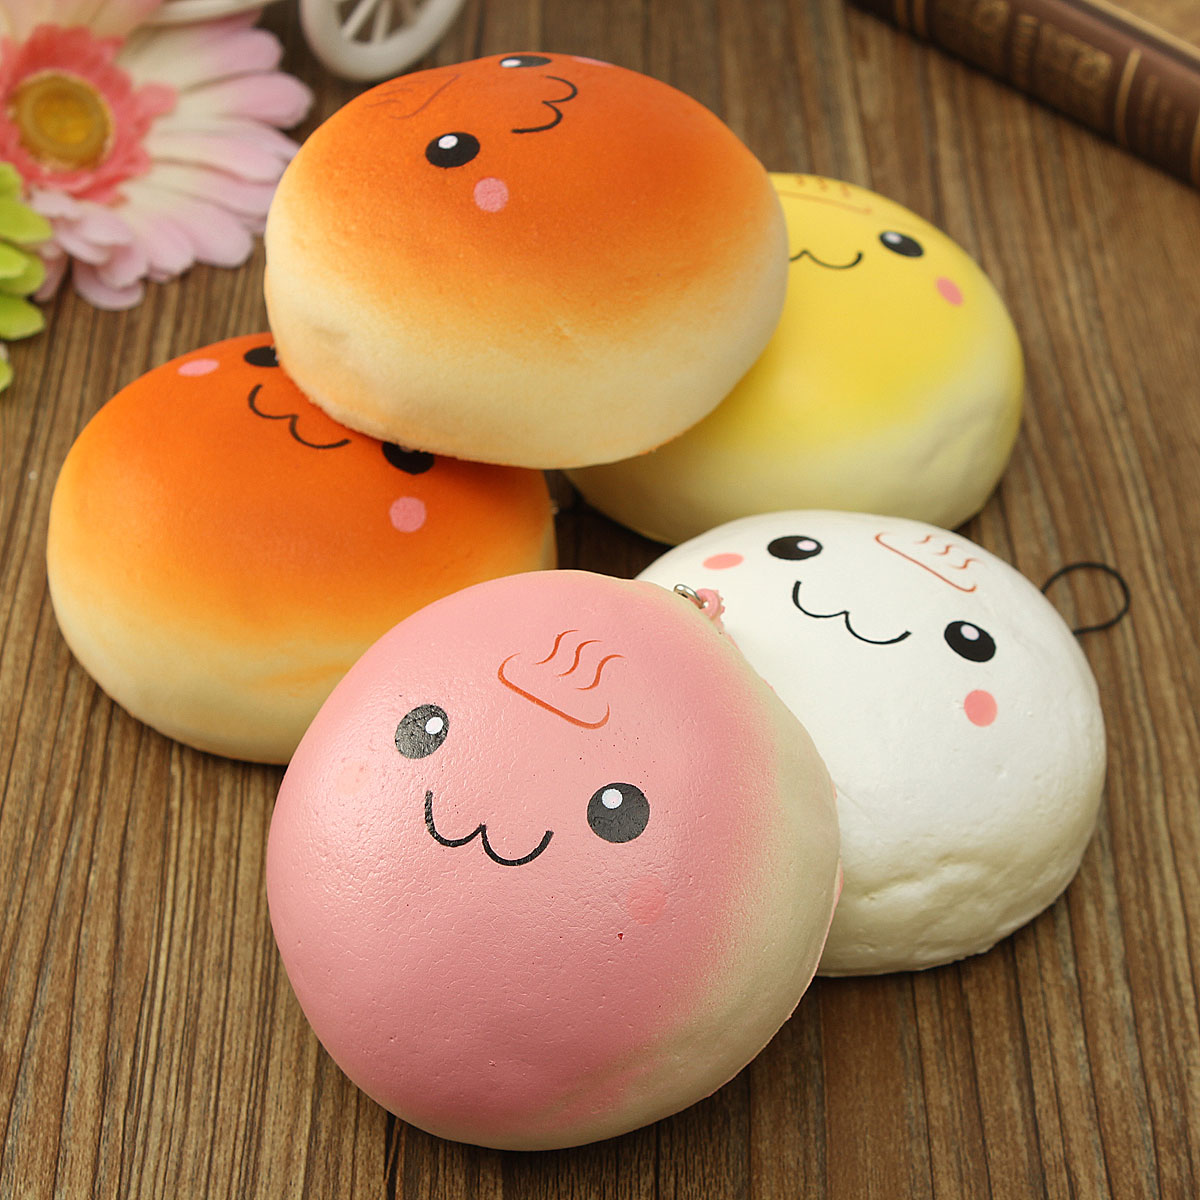 Squishy Bread : 10CM Cute Smiling Expression Kawaii Squishy Bread Keychain Bag Phone Charm Strap Alex NLD